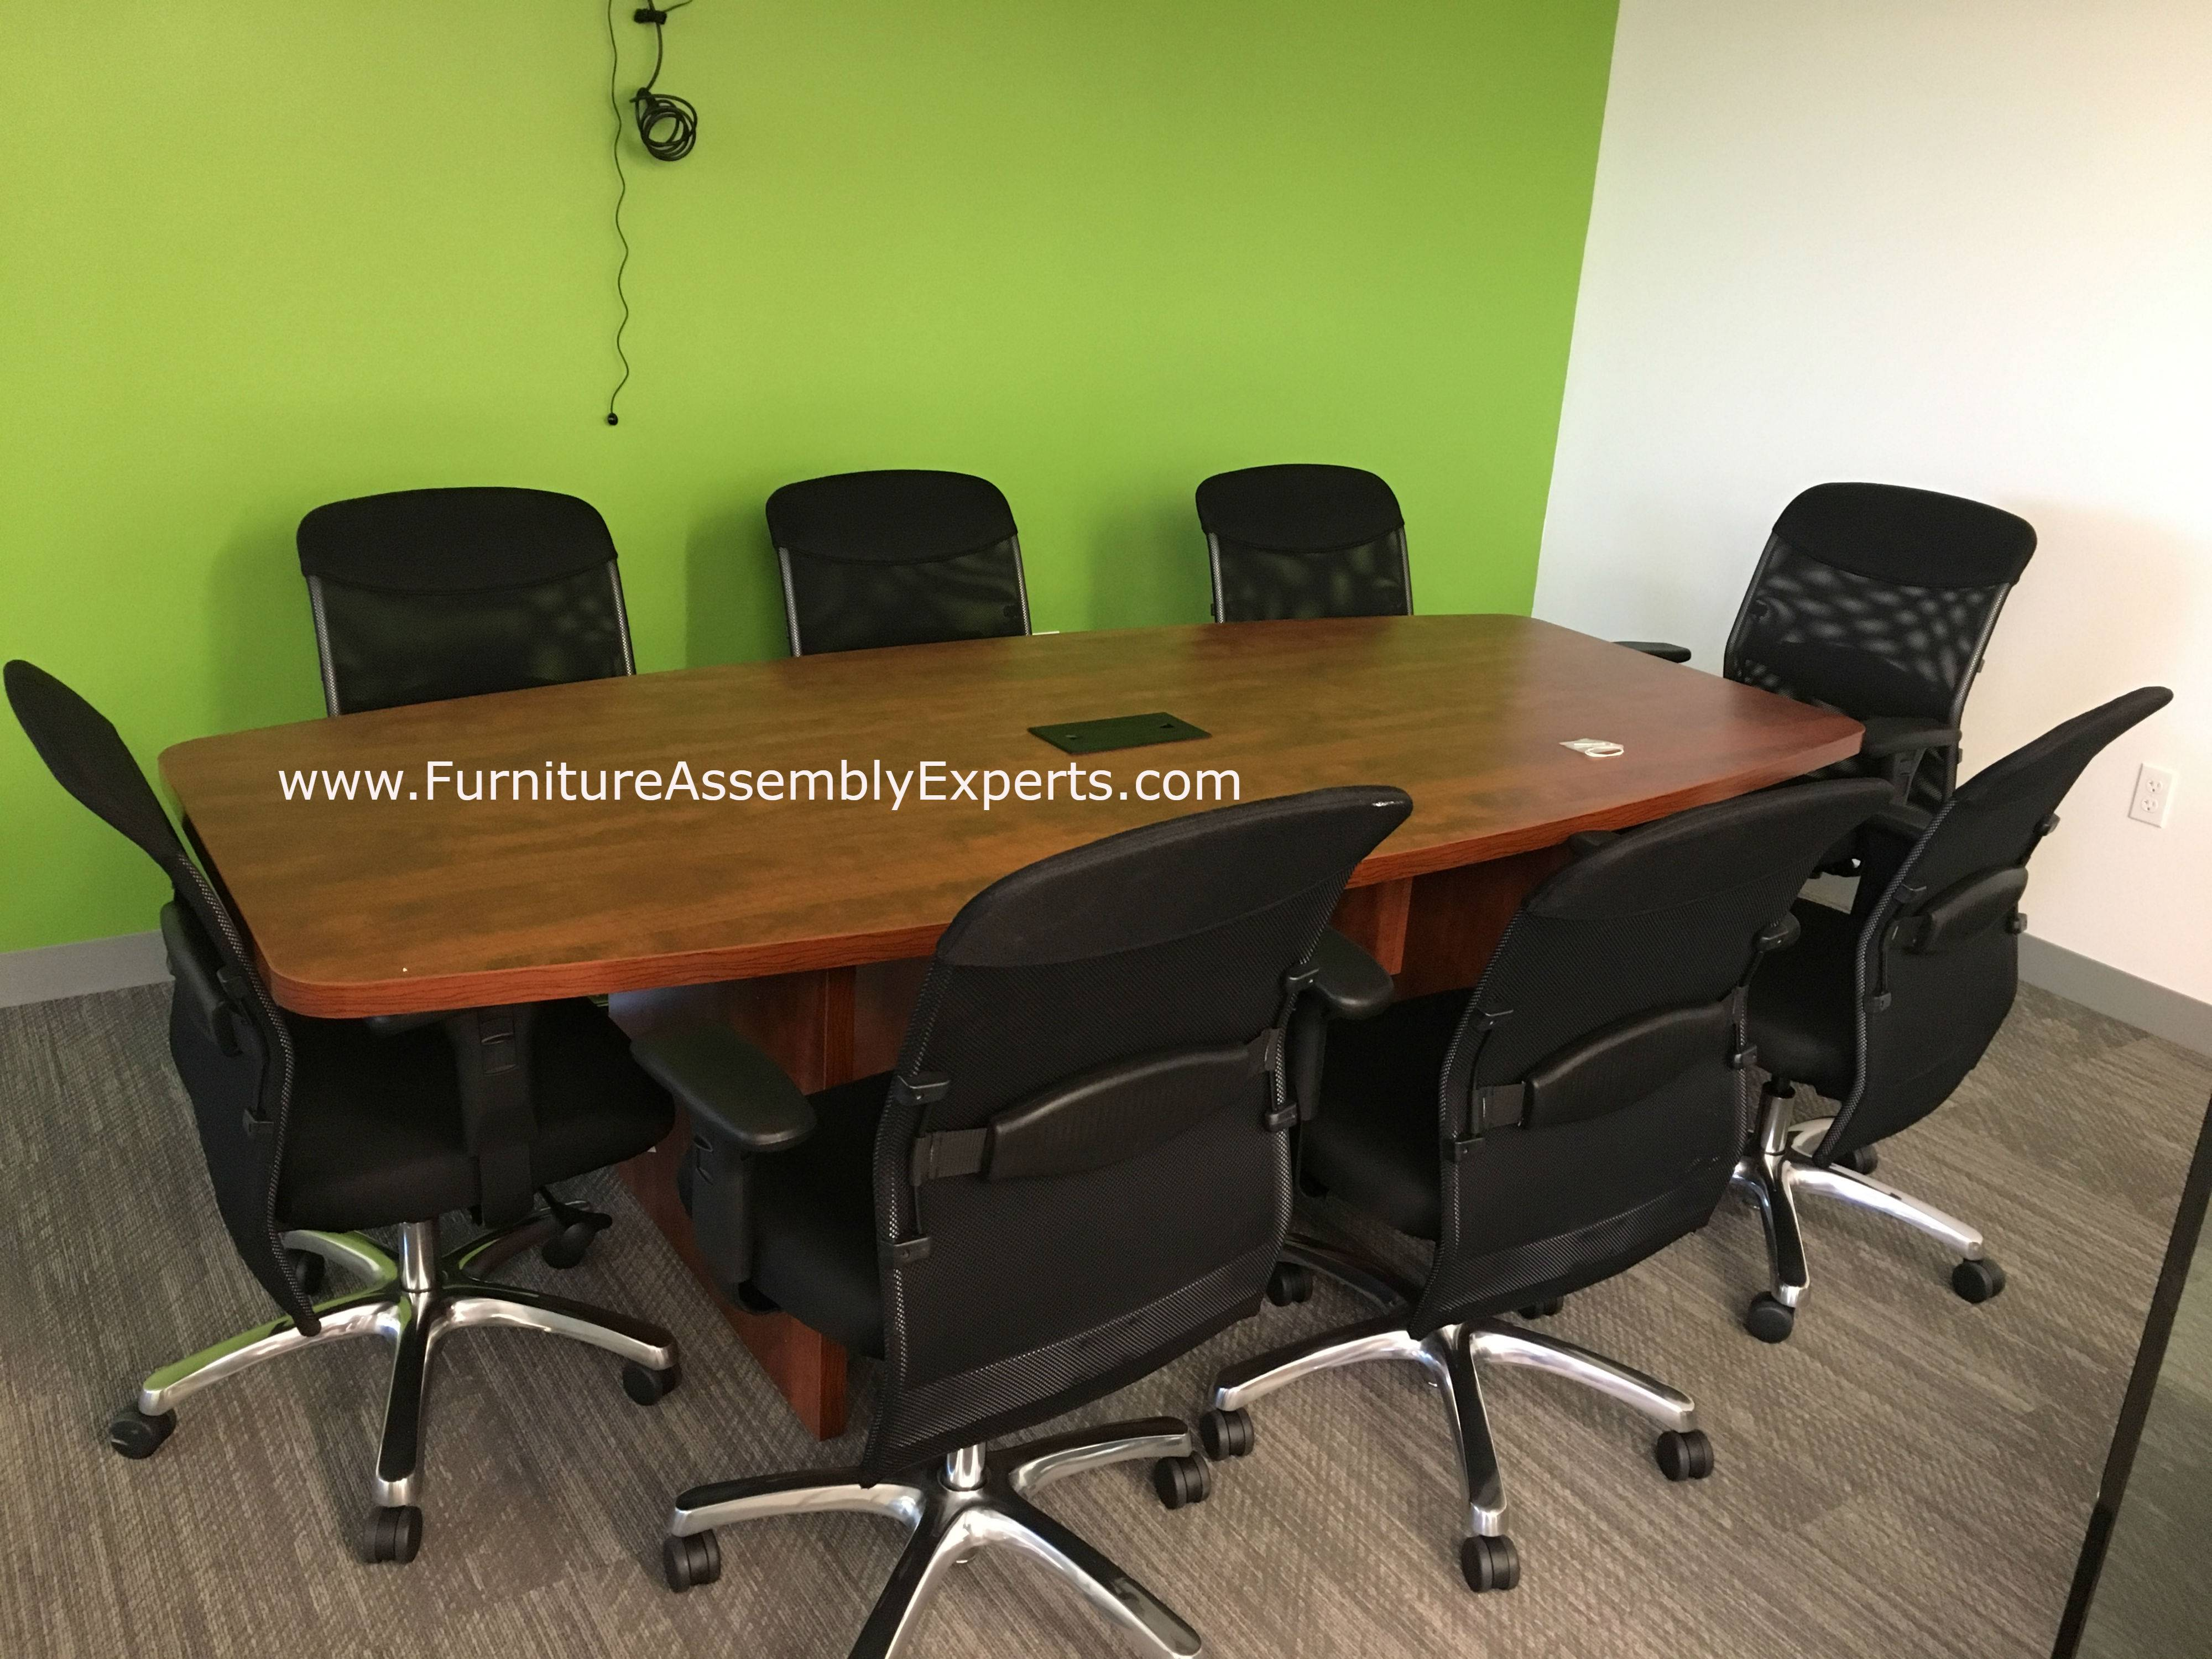 conference table installation service in Glen burnie Maryland